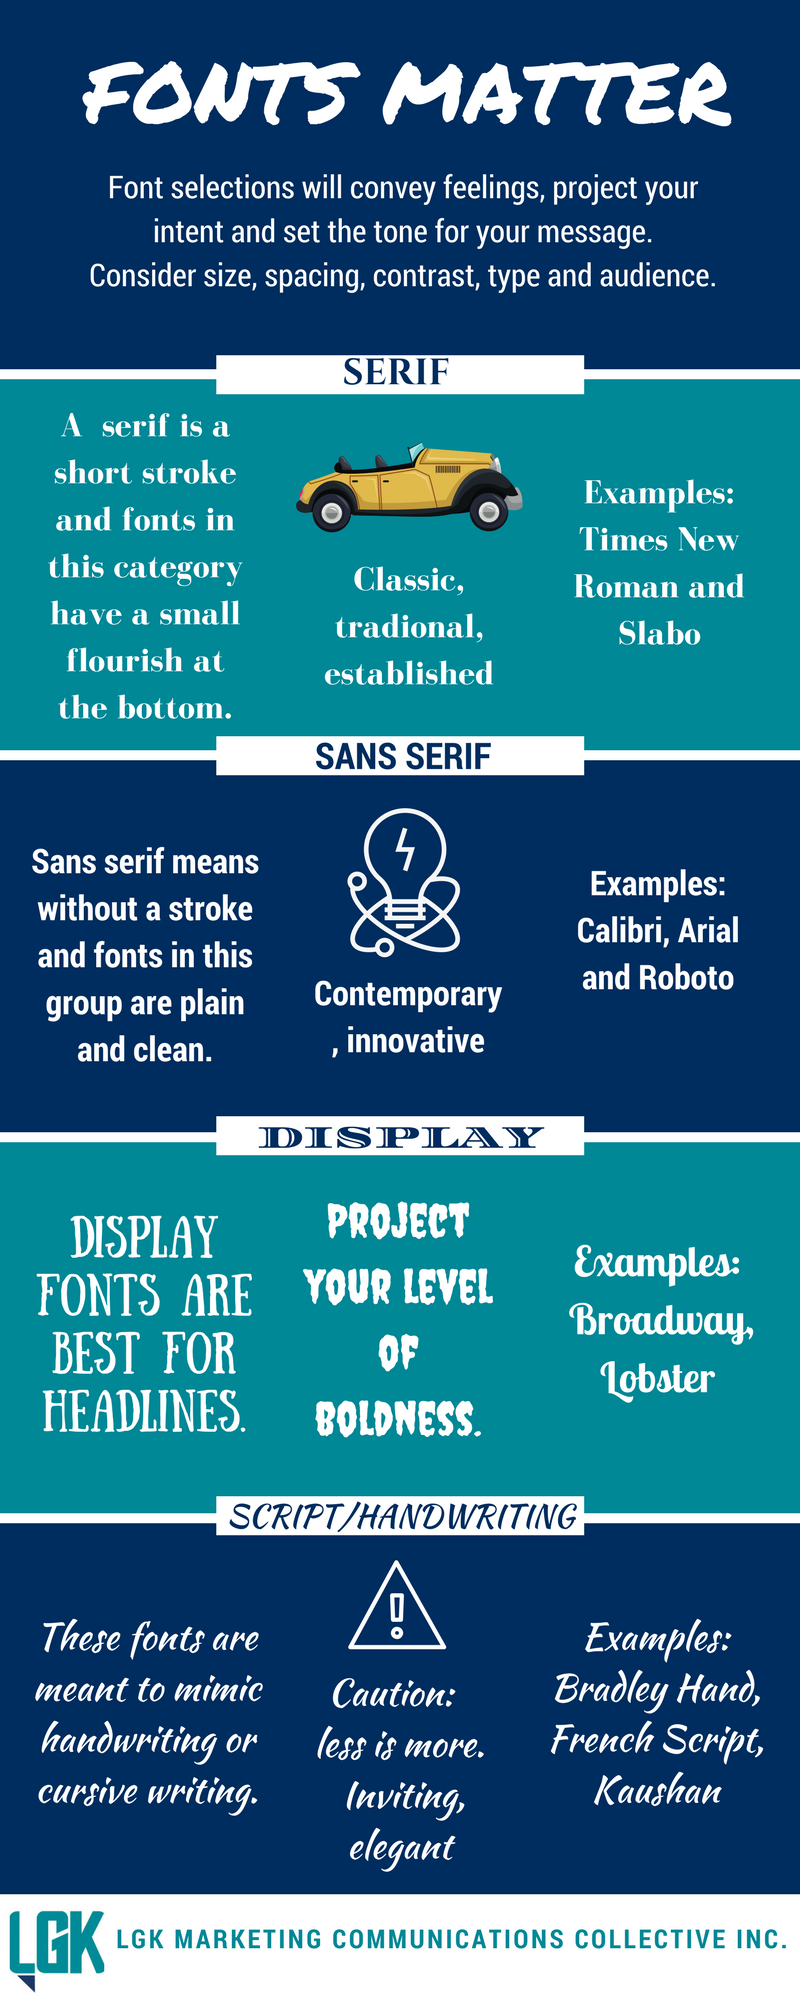 Why Fonts Matter in Marketing | LGK Marketing CC